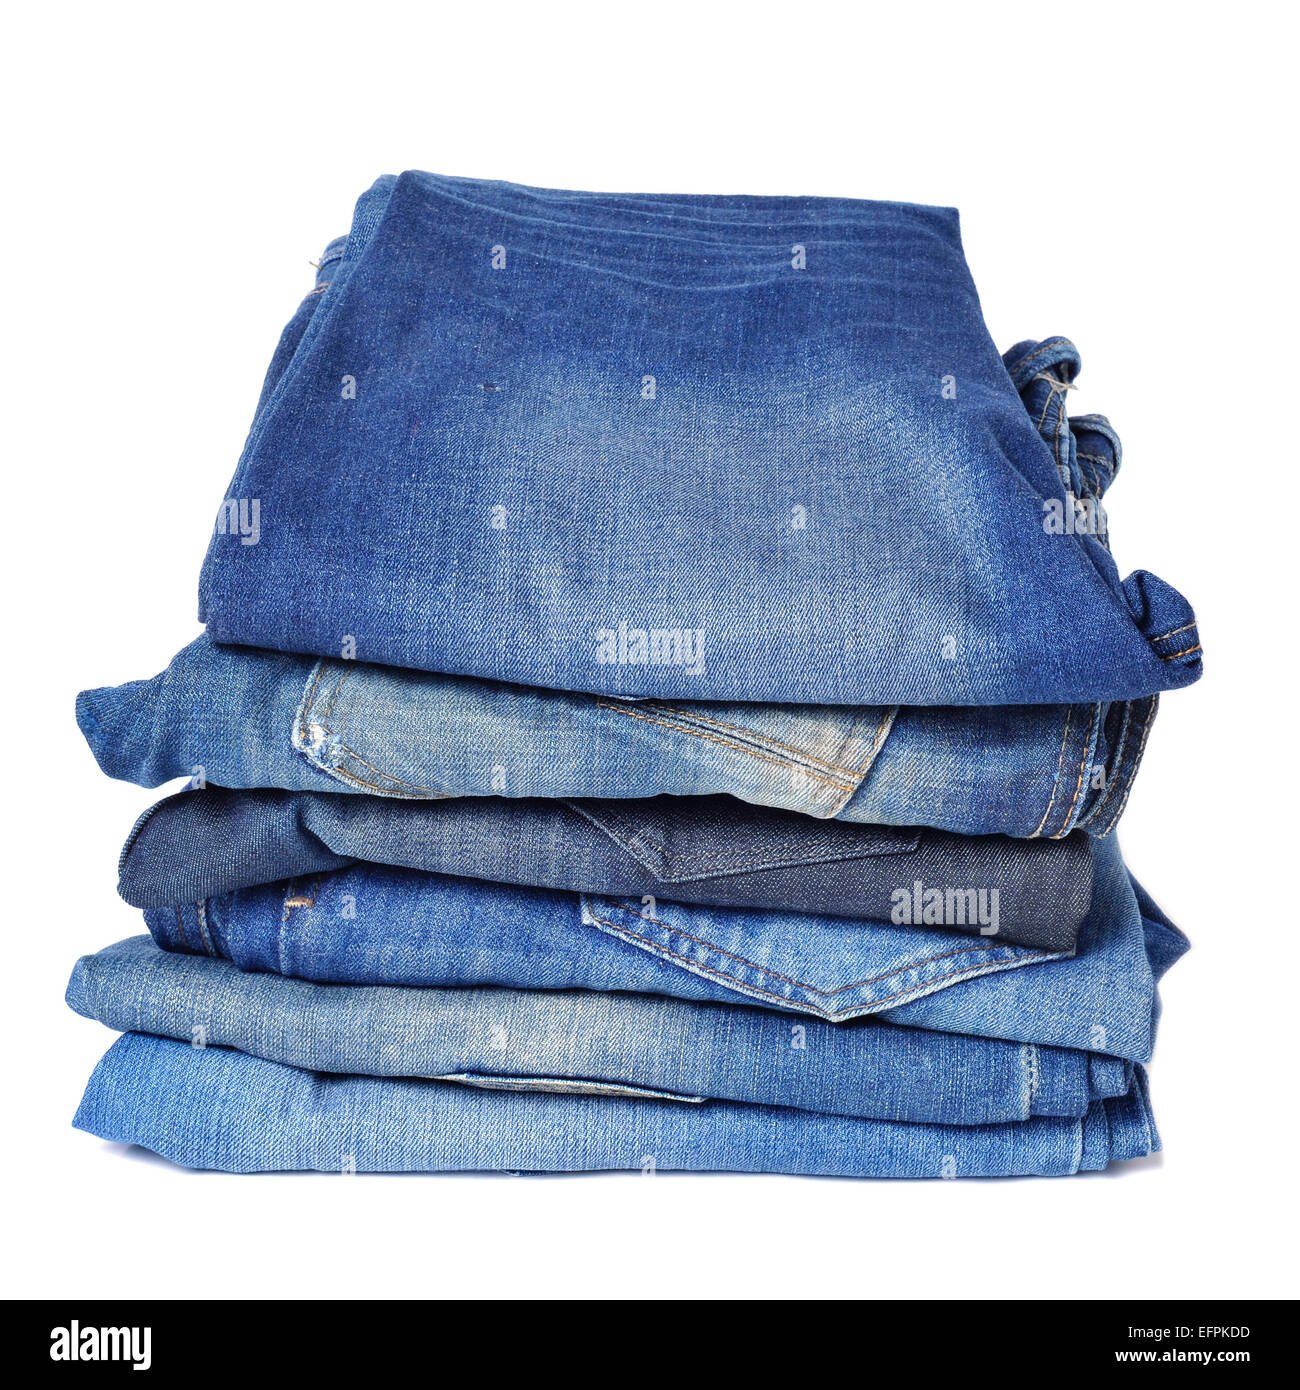 a pile of folded blue jeans on a white background - Stock Image